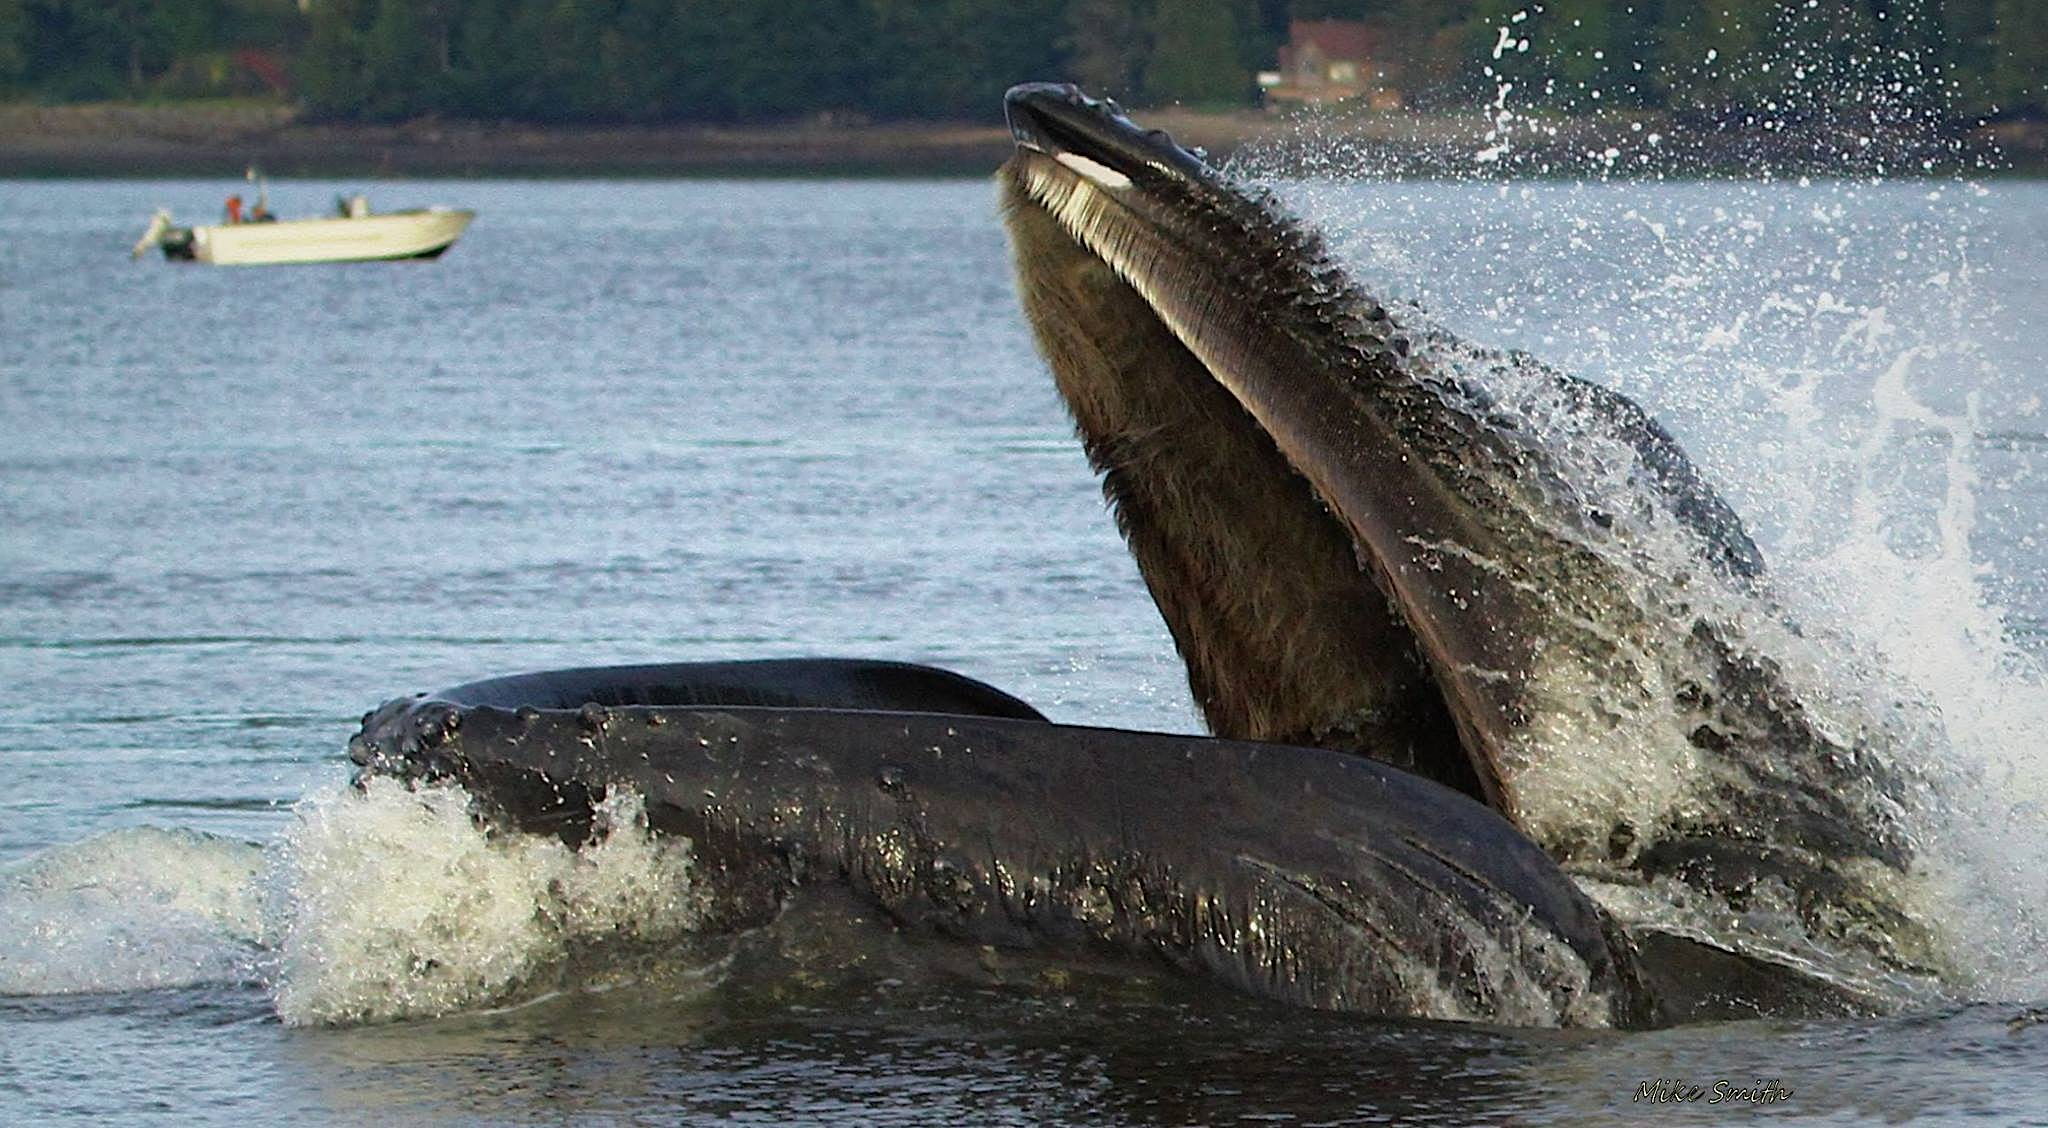 THE HUMPBACK WHALES MOUTH IS HUGE! NOTICE THE BALEEN PLATES, MADE OF KERATIN, SAME AS OUR FINGERNAILS. THESE PLATES STRAIN THE WATER OF PLANKTON, SMALL FISH AND KRILL SO THAT THE HUMPBACKS CAN FEED. IMAGE: ©MIKE SMITH